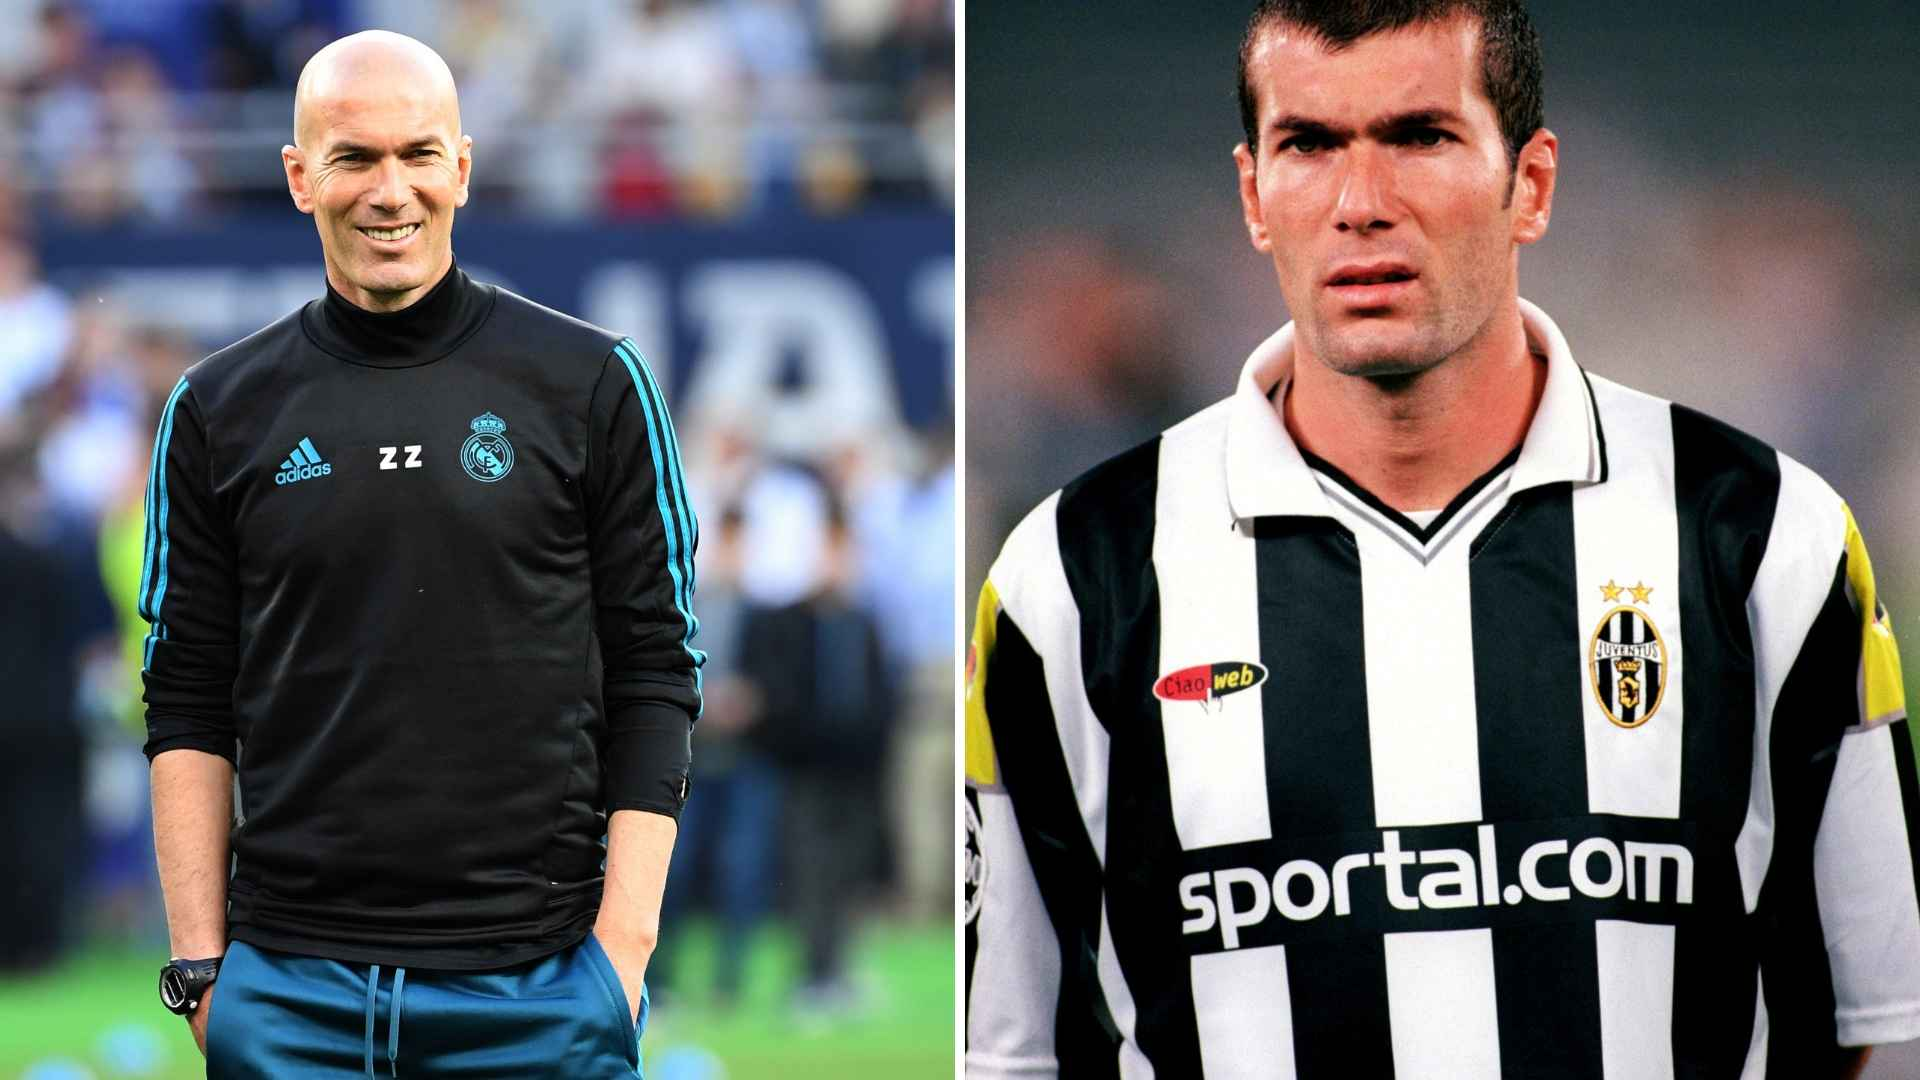 Zinedine Zidane Drops His Biggest Hint Yet Of Returning To Juventus -  SPORTbible